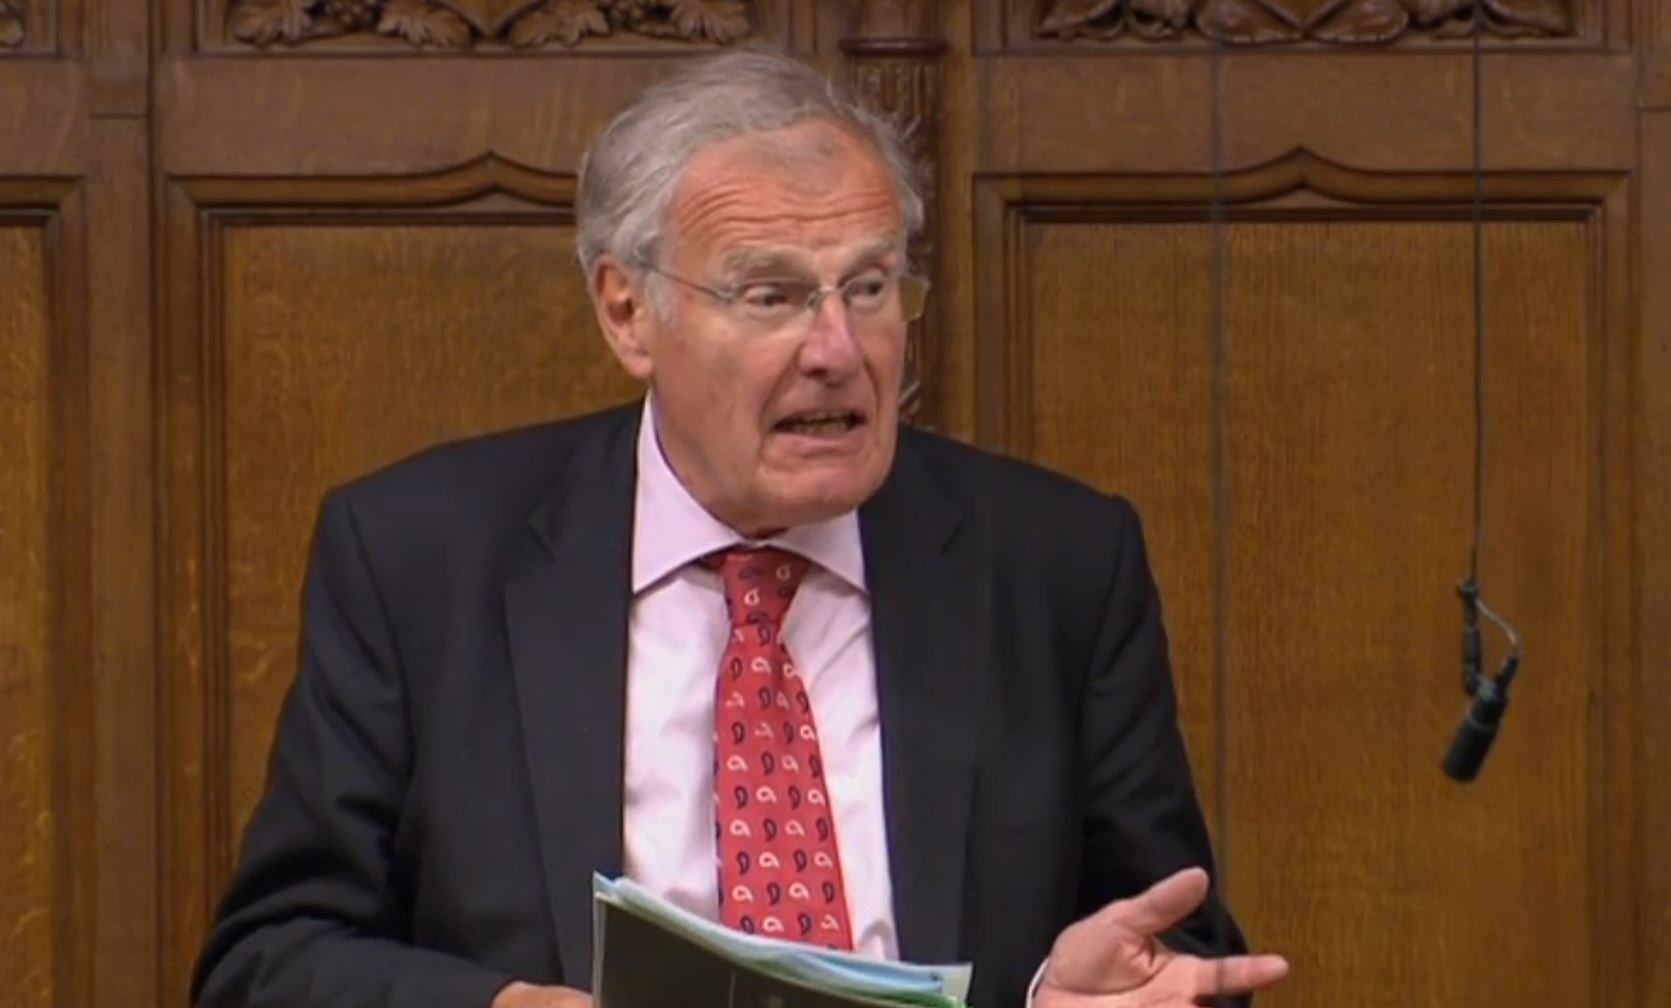 """Sir Christopher Chope speaking in the House of Commons, London as Government-backed plans to criminalise upskirting have been derailed after being opposed by the Conservative grandee. PRESS ASSOCIATION Photo. Picture date: Friday June 15, 2018. There were cries of """"shame!"""" as Sir Christopher dealt a blow to campaigners after announcing he objected to the Voyeurism (Offences) Bill which would make it illegal for offenders to take a picture under someone's clothing without their consent. See PA story POLITICS Upskirting. Photo credit should read: PA Wire"""